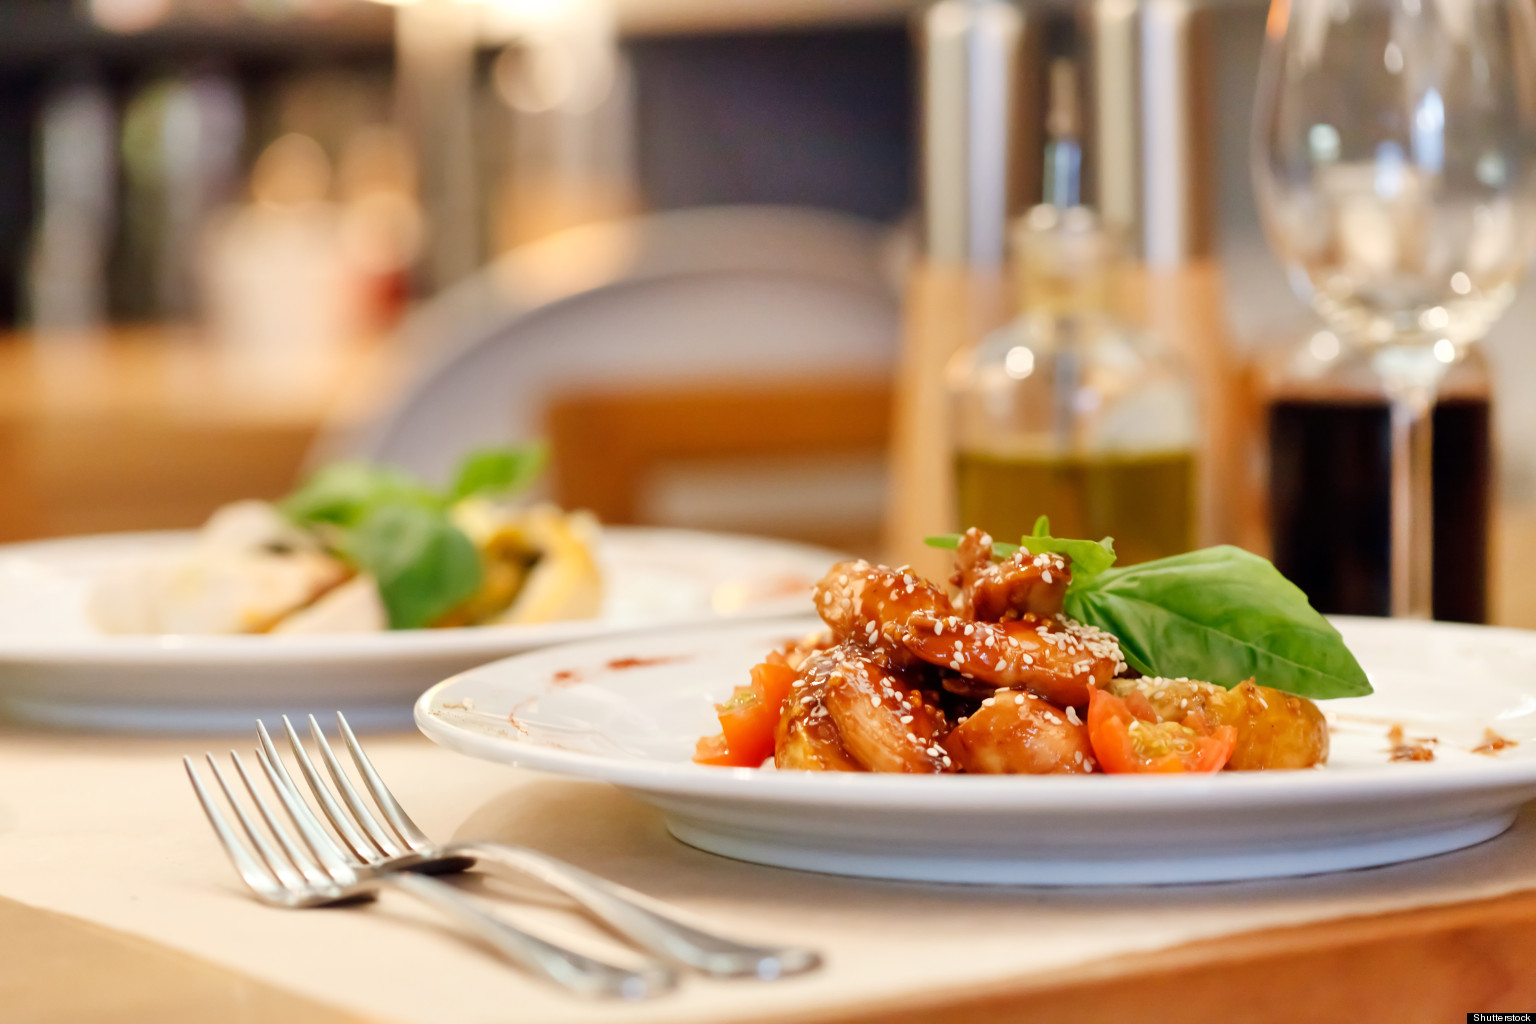 Restaurant Meals Have More Than Half Of Daily Recommended..